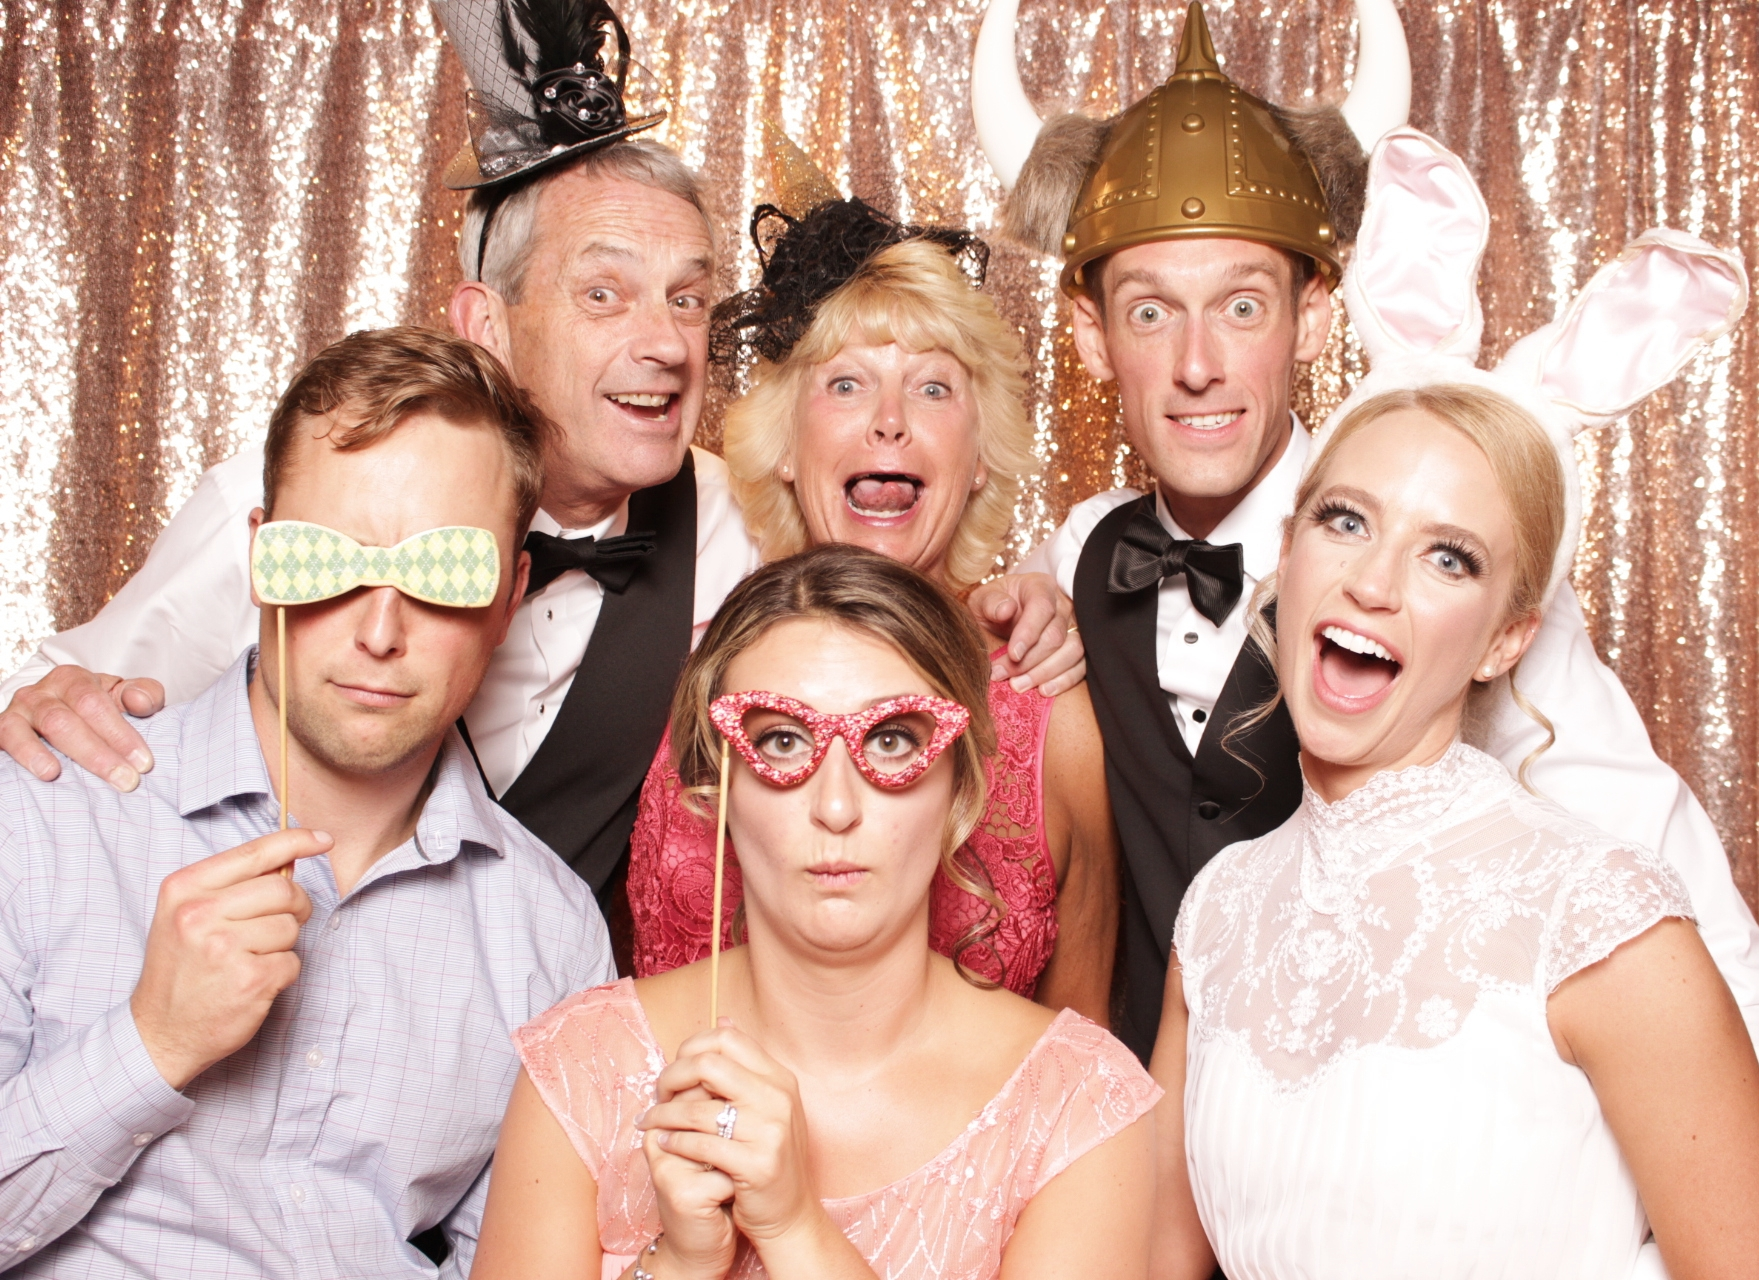 WACKY WEDDING FUN AT tWIN OWLS STEAKHOUSE IN ESTES PARK WITH SPARKLY ROSE GOLD BACKDROP